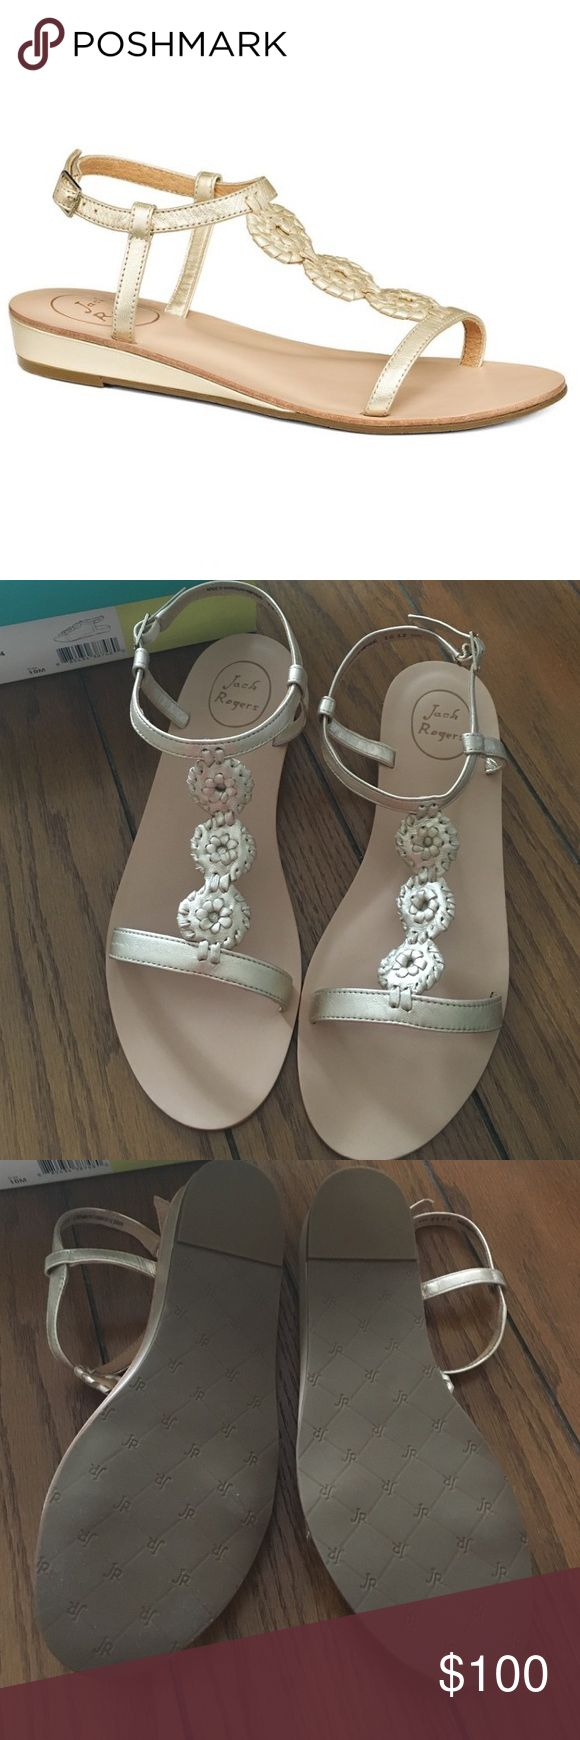 NEW Jack Rogers Sandals These are brand new and come in box as shown. Color: platinum. Price is firm. Jack Rogers Shoes Sandals